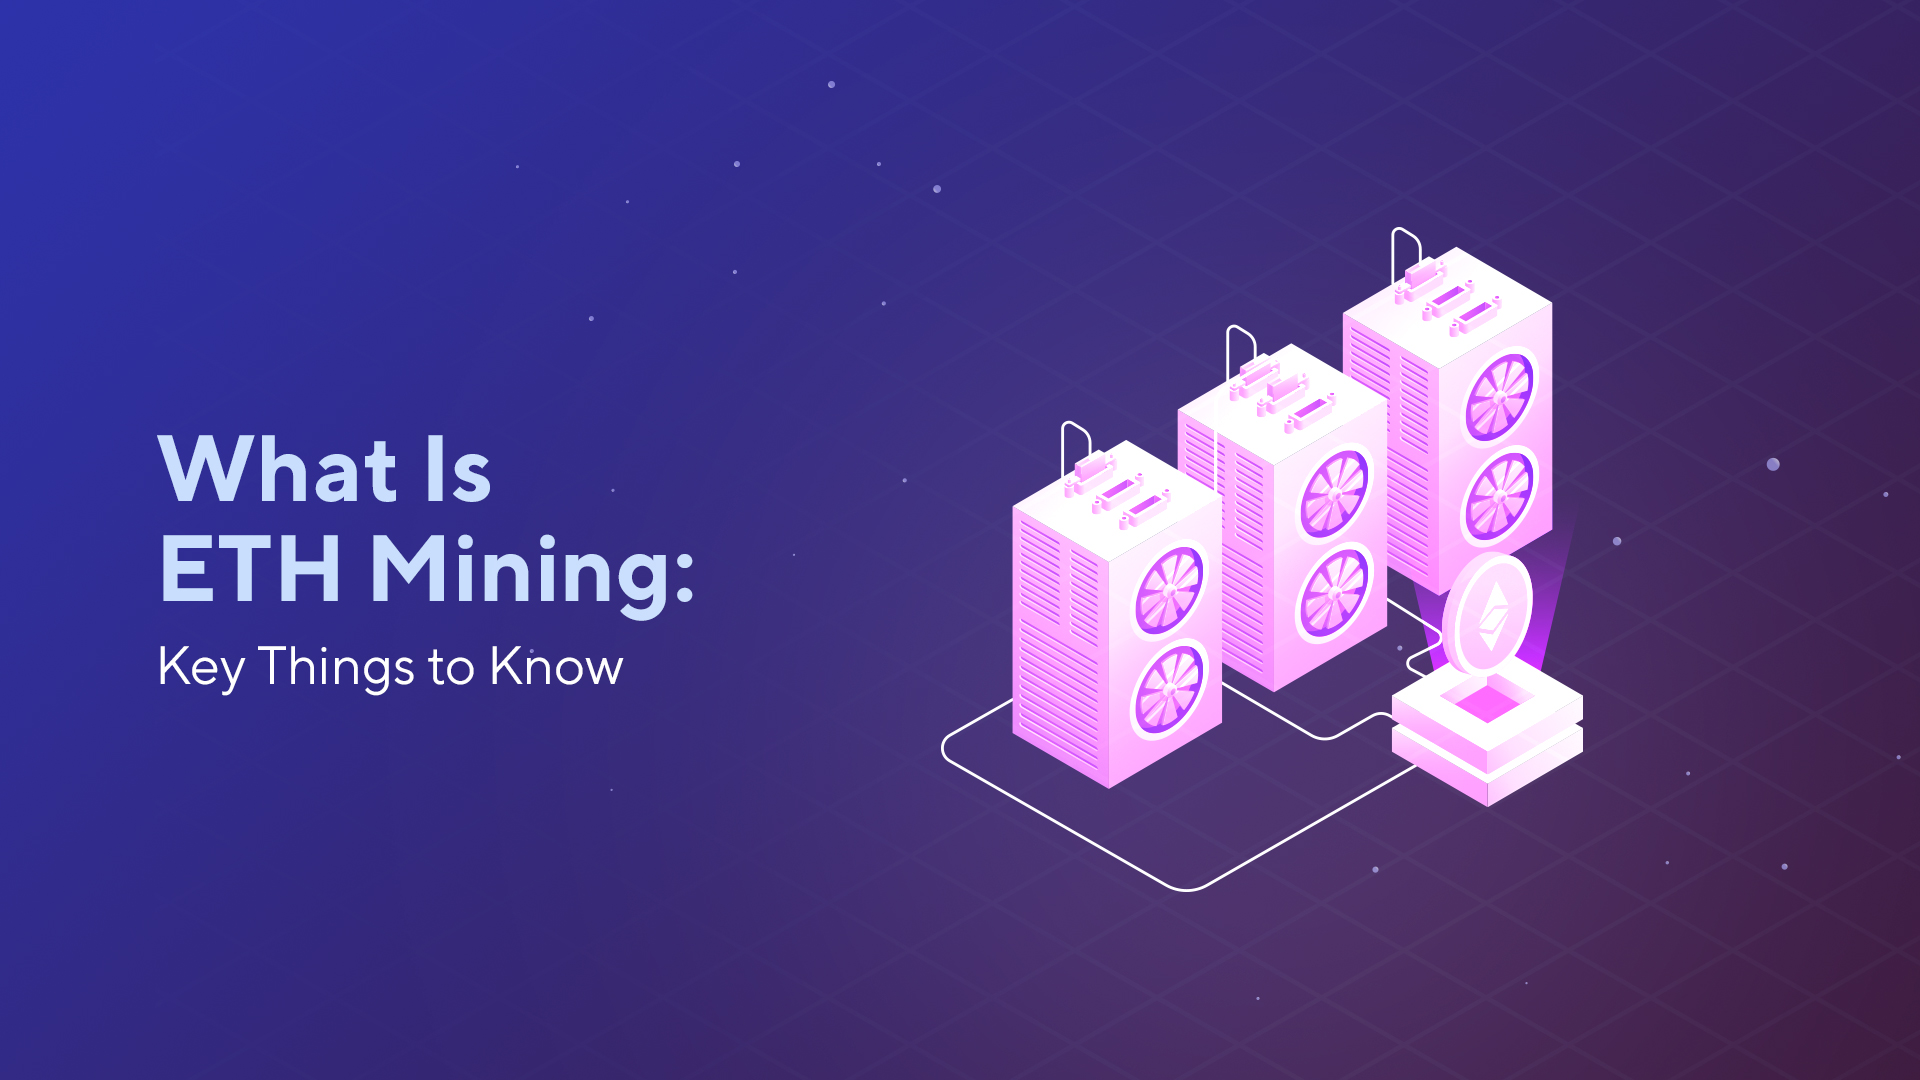 What Is ETH Mining: Key Things to Know